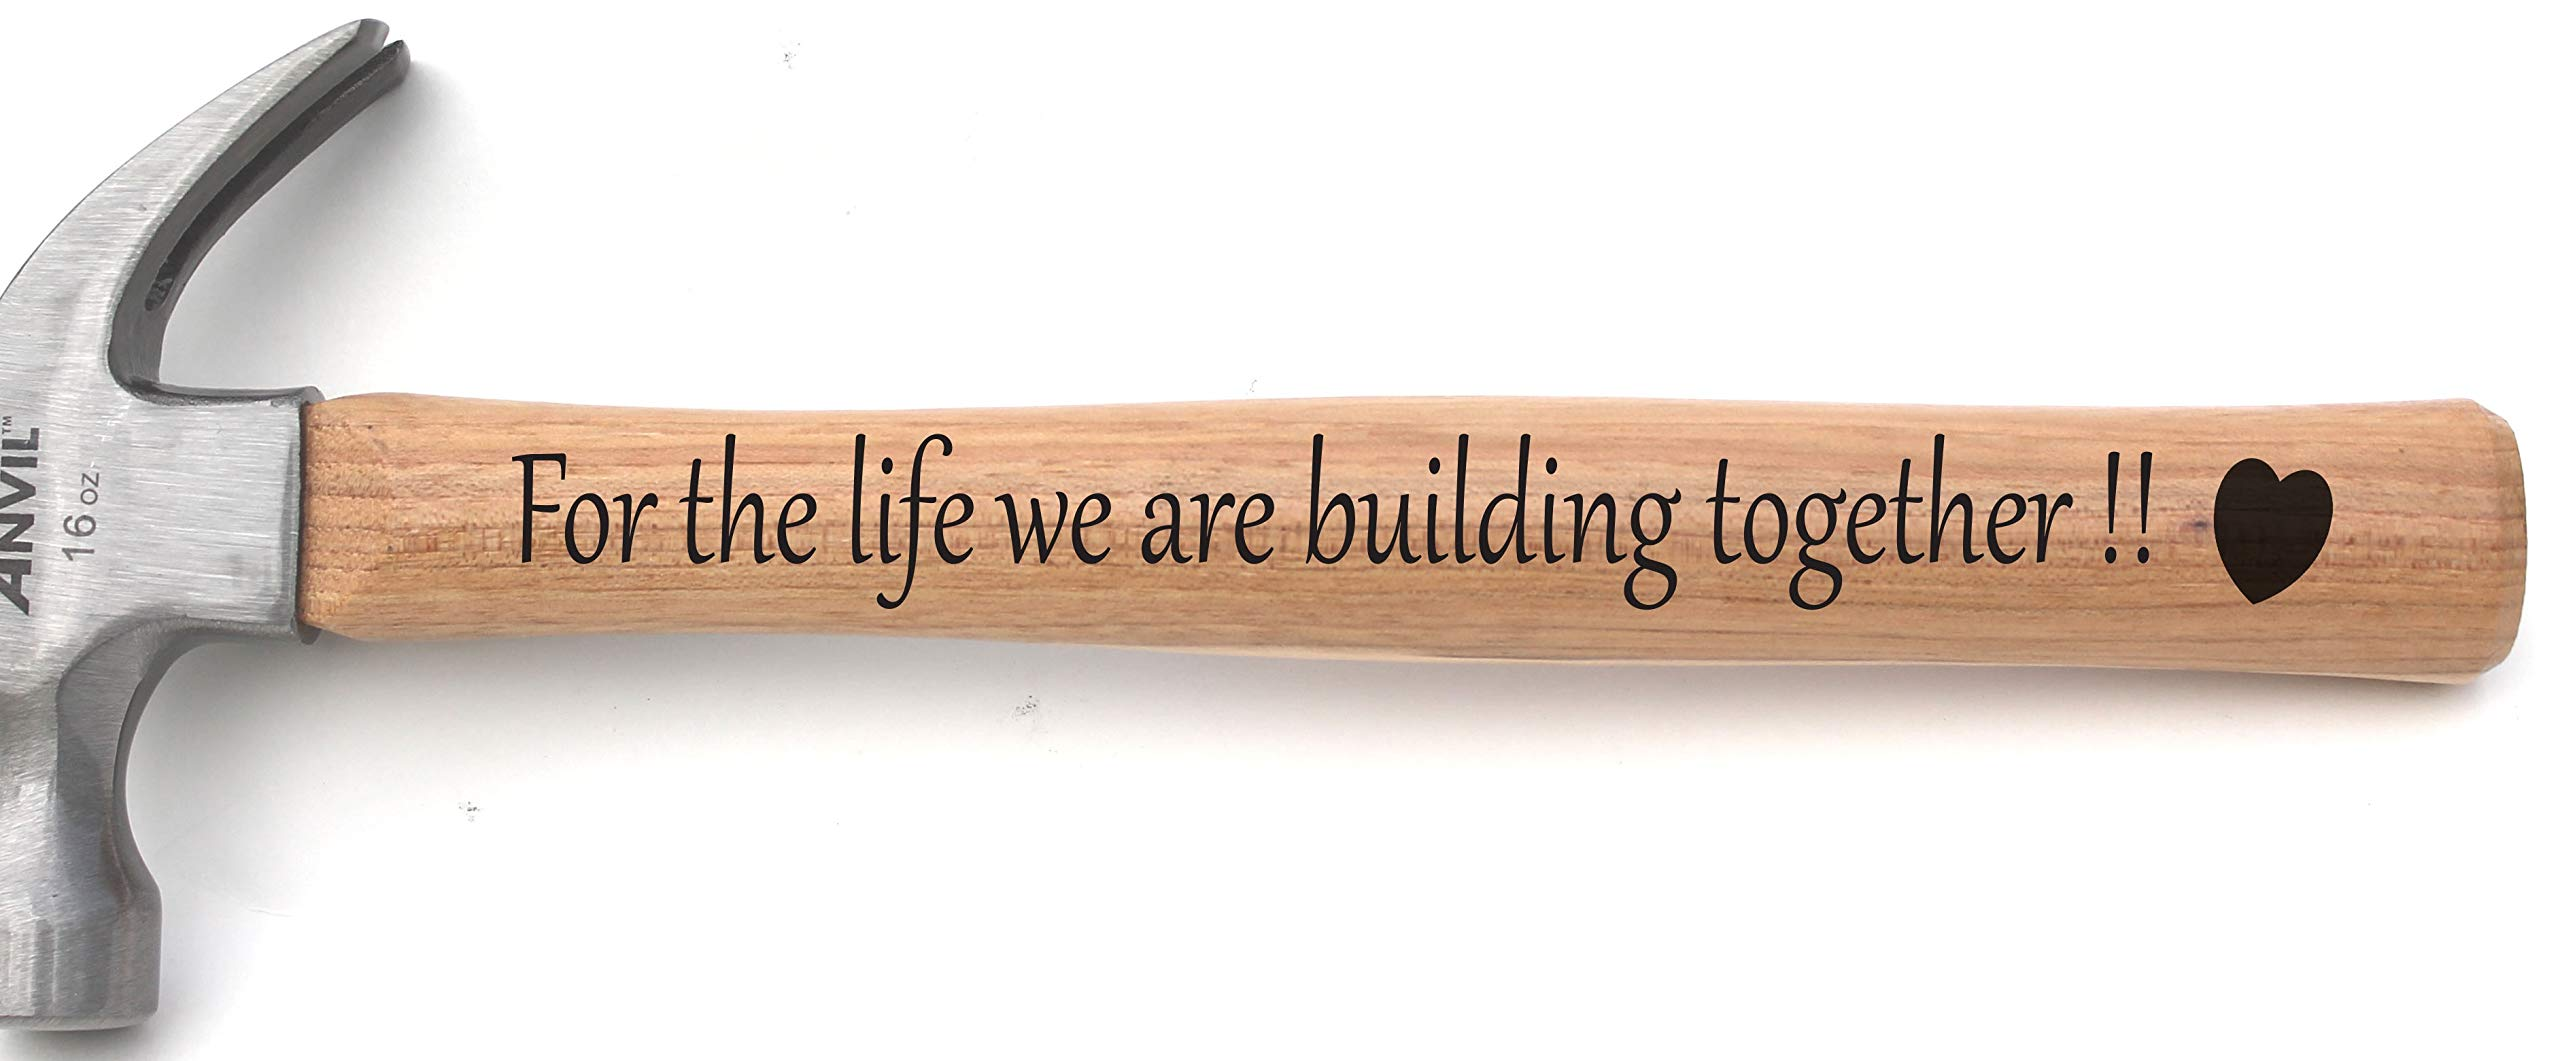 Anniversary Hammer - Engraved Hammer Anniversary - Engraved Hammer Christmas Gift for Husband or Dad or Grandpa or Uncle - Building Memories Hammer - Husband Birthday Gifts